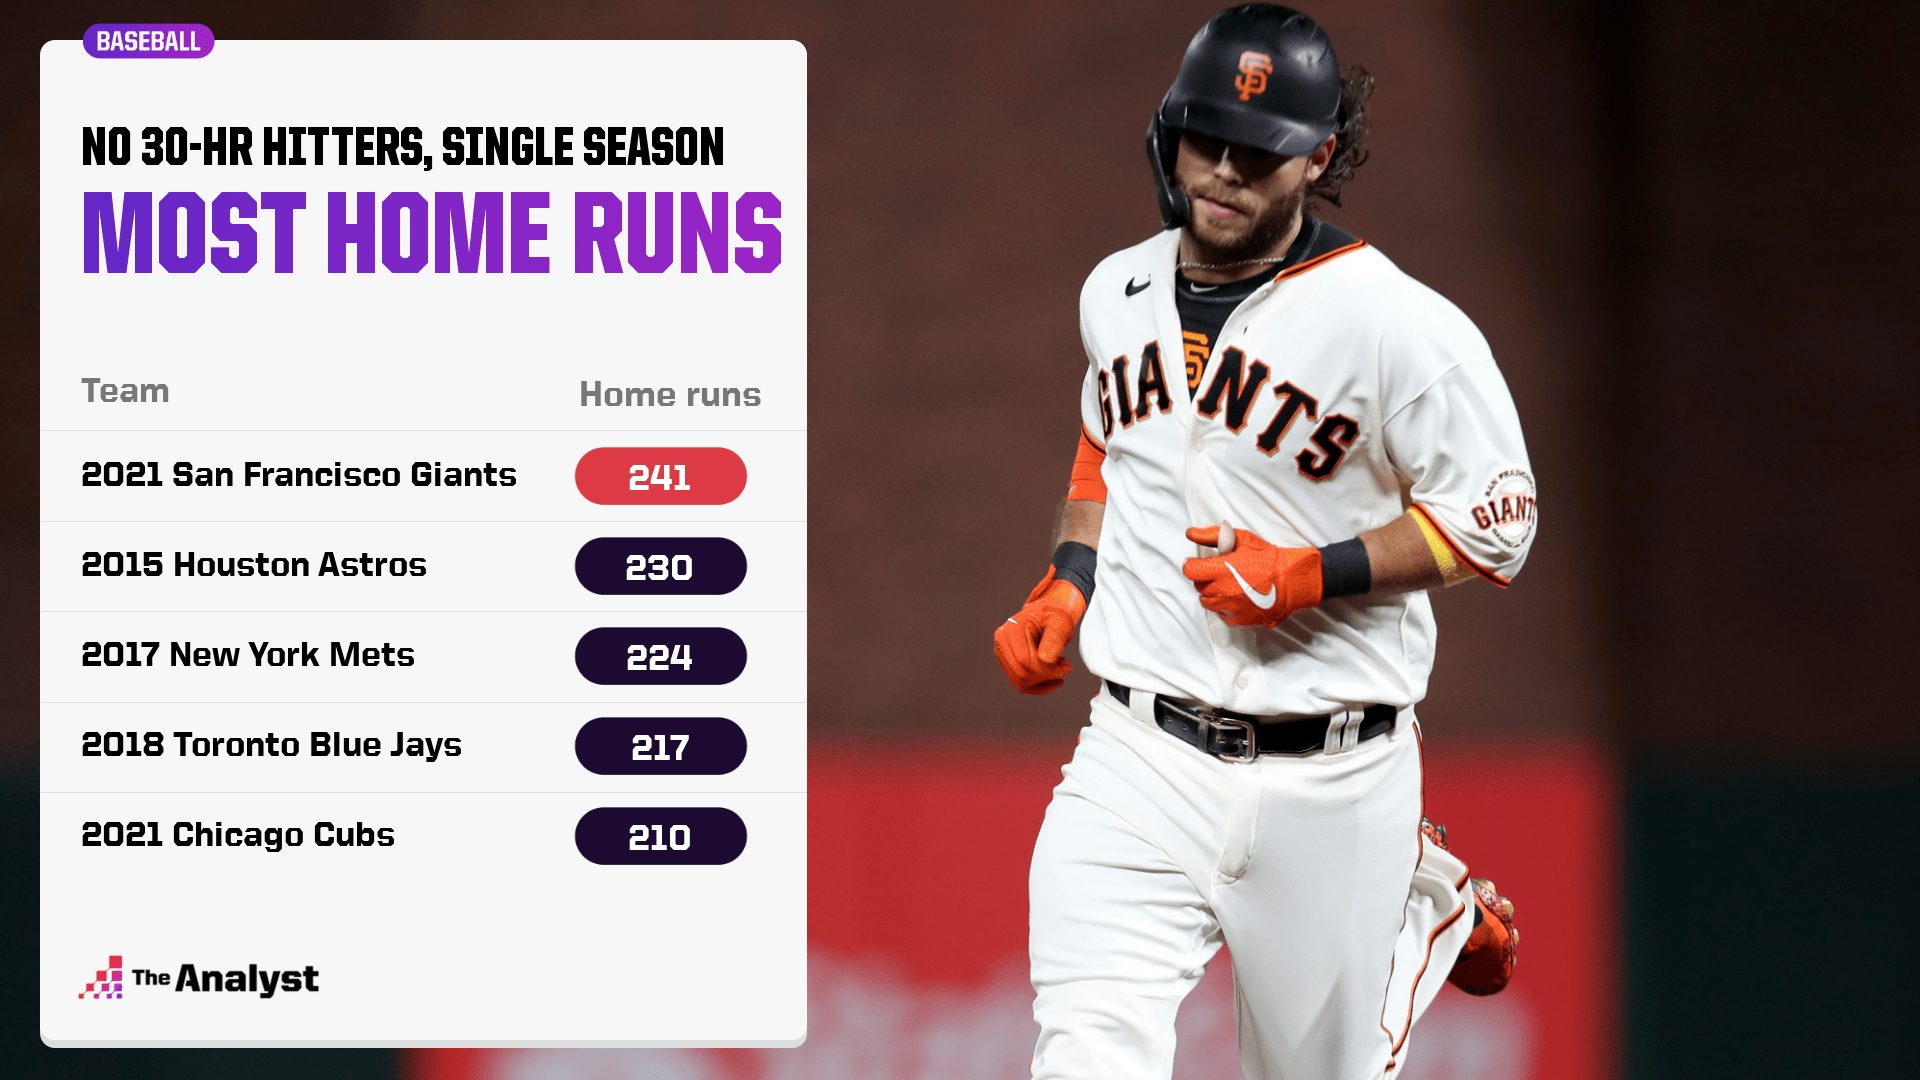 Most Home Runs without a 30 home run hitter